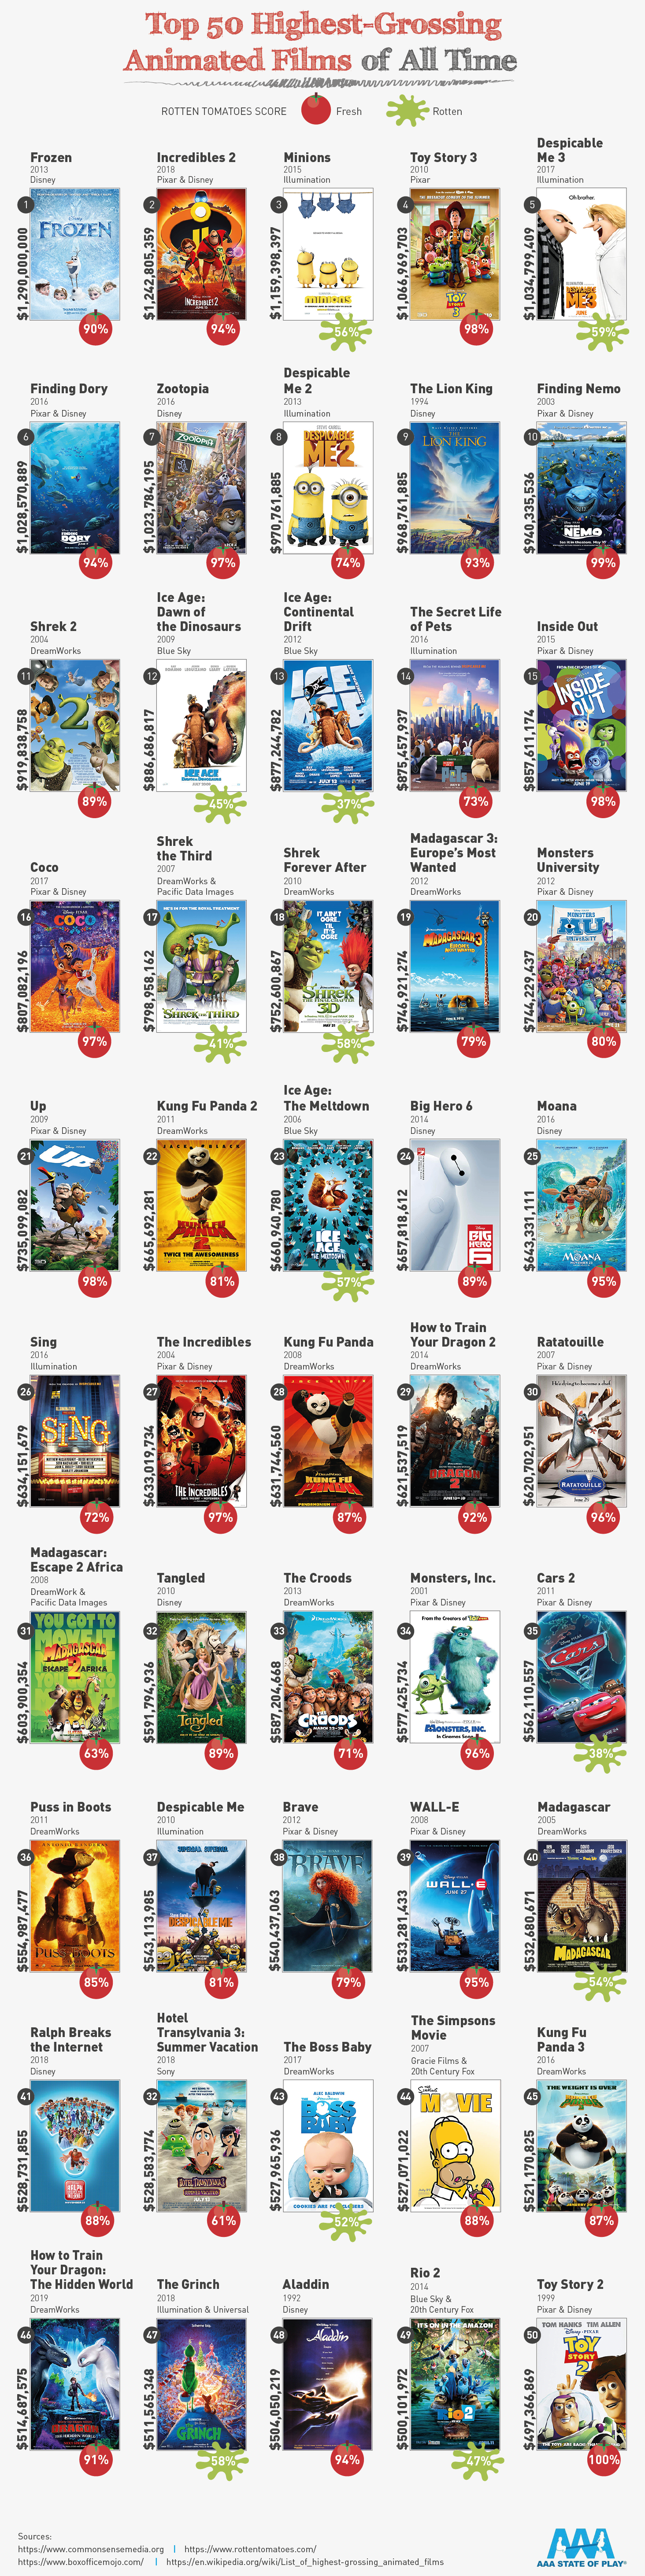 The Top 50 HighestGrossing Animated Films Disney movies